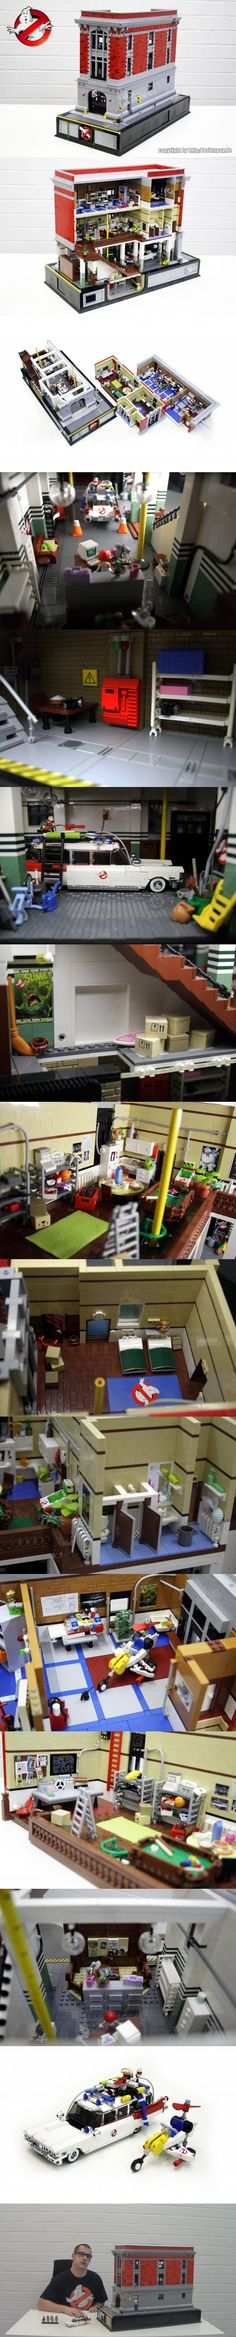 I'm jealous, frightened & in lovewith the level of geek shown here ...   LEGO Ghostbusters HQ & Vehicles